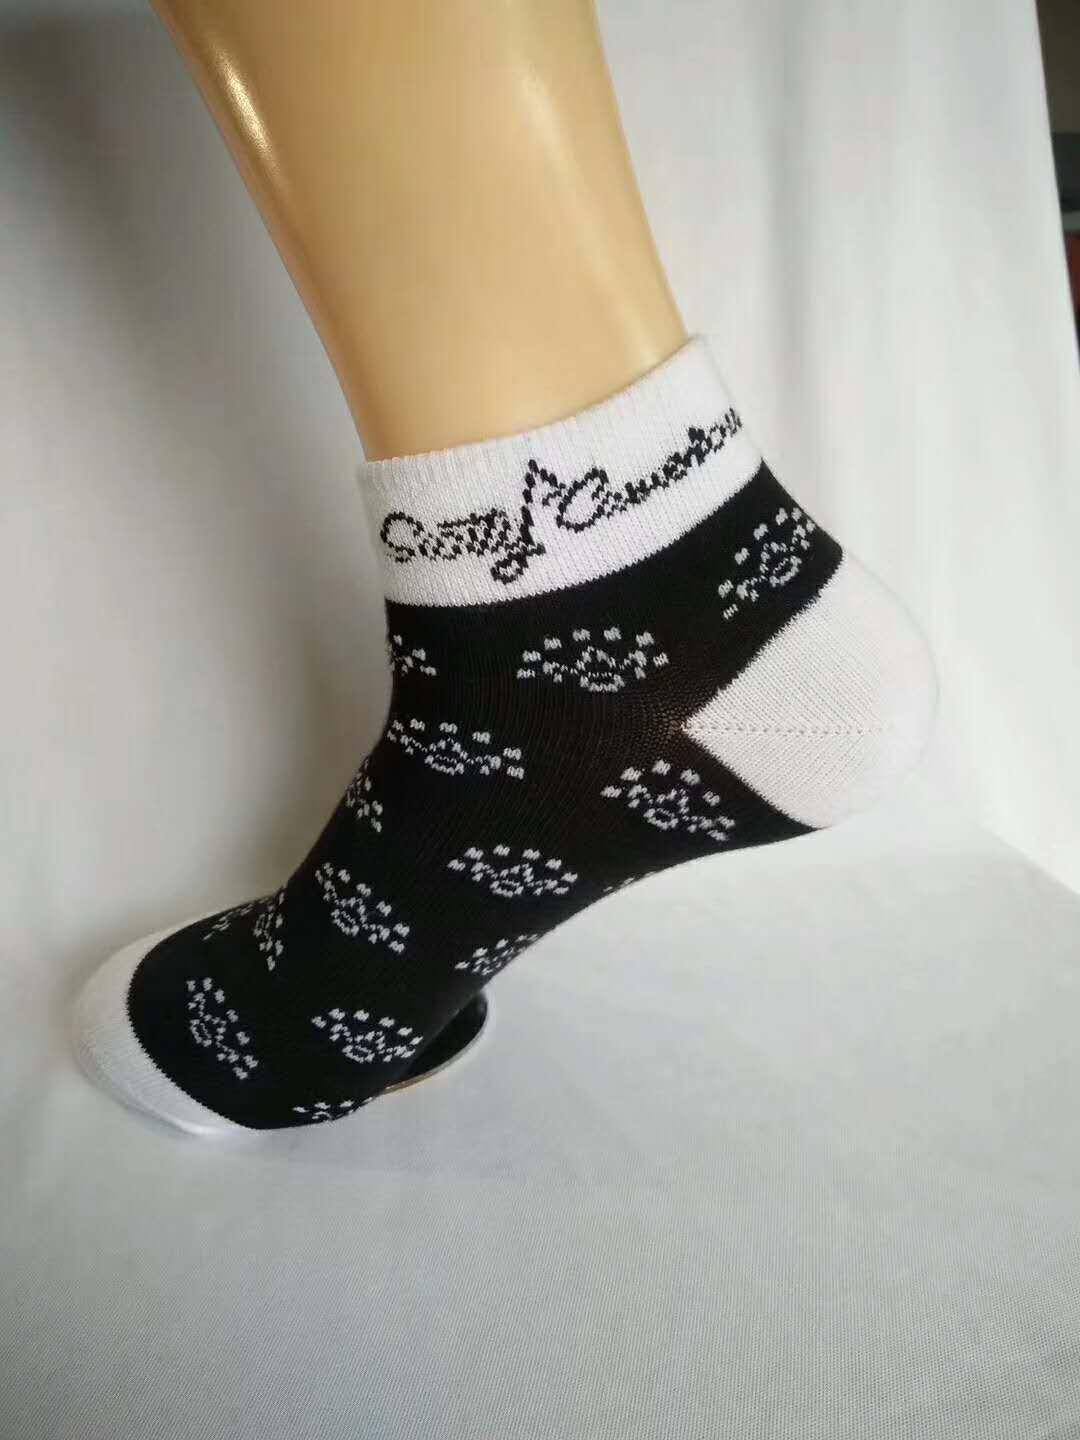 Scotty Cameron women's socks - Black